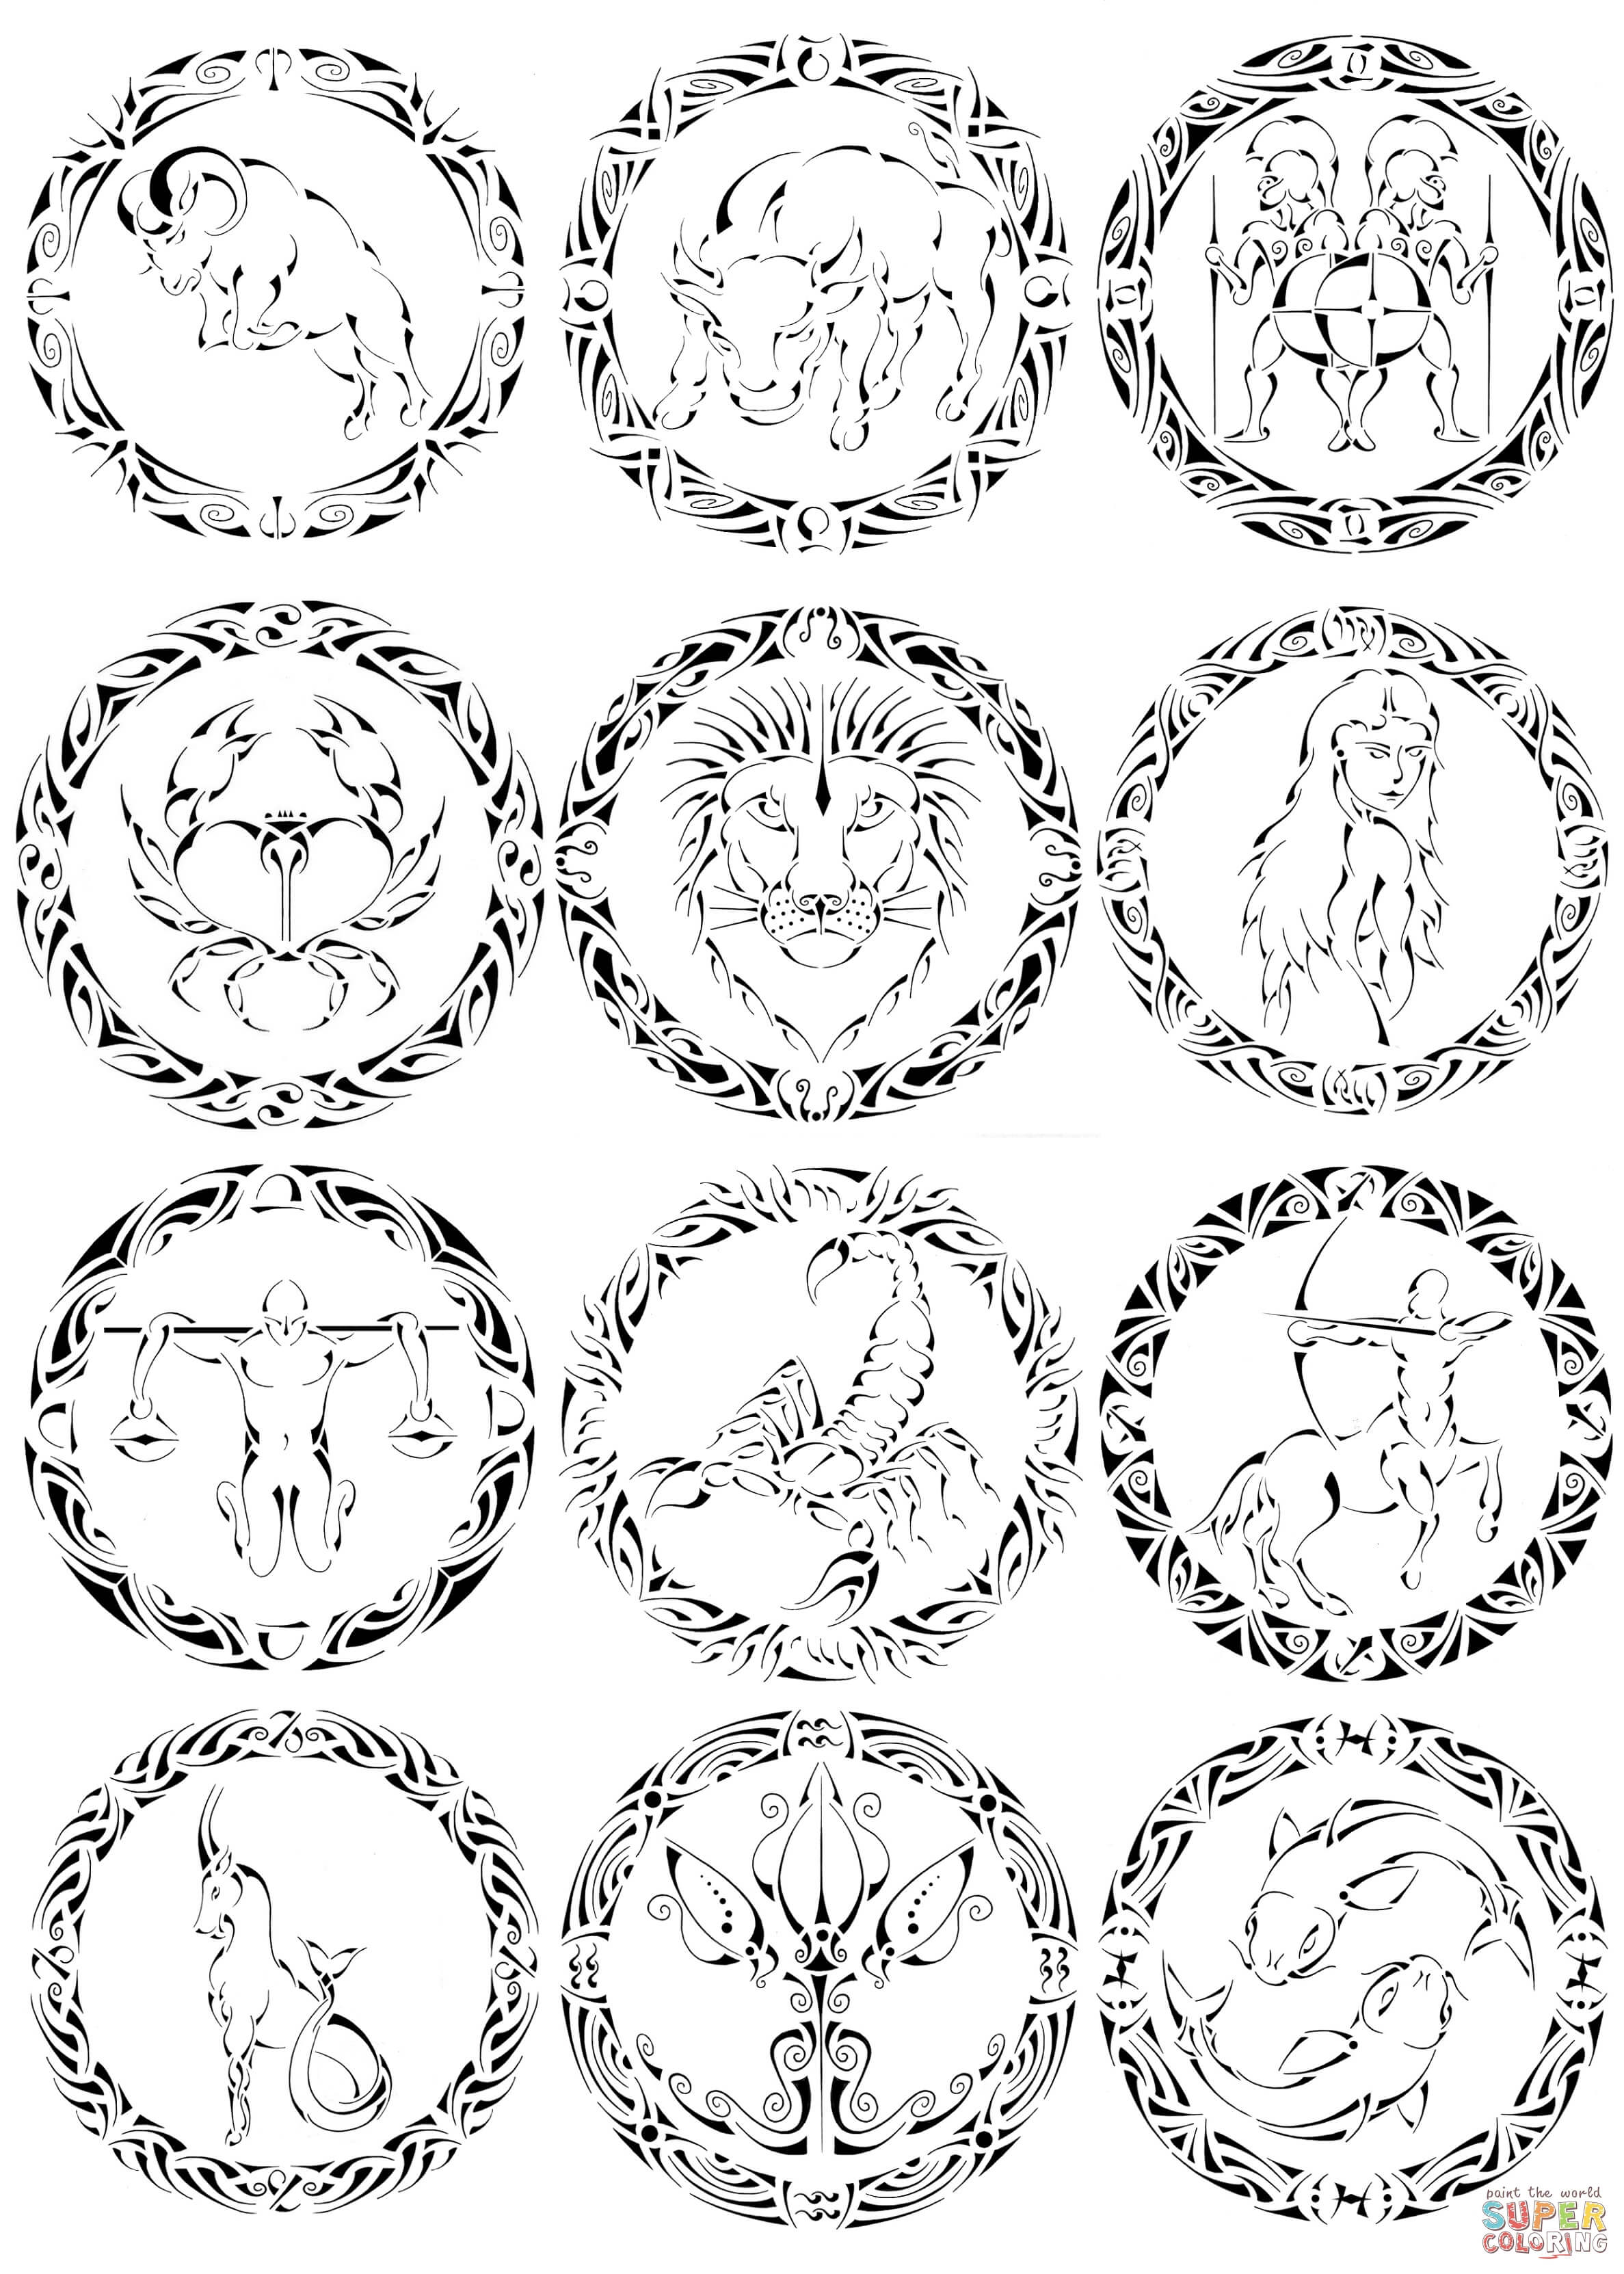 Zodiac Signs by Curvy Tribal coloring page | Free Printable Coloring ...